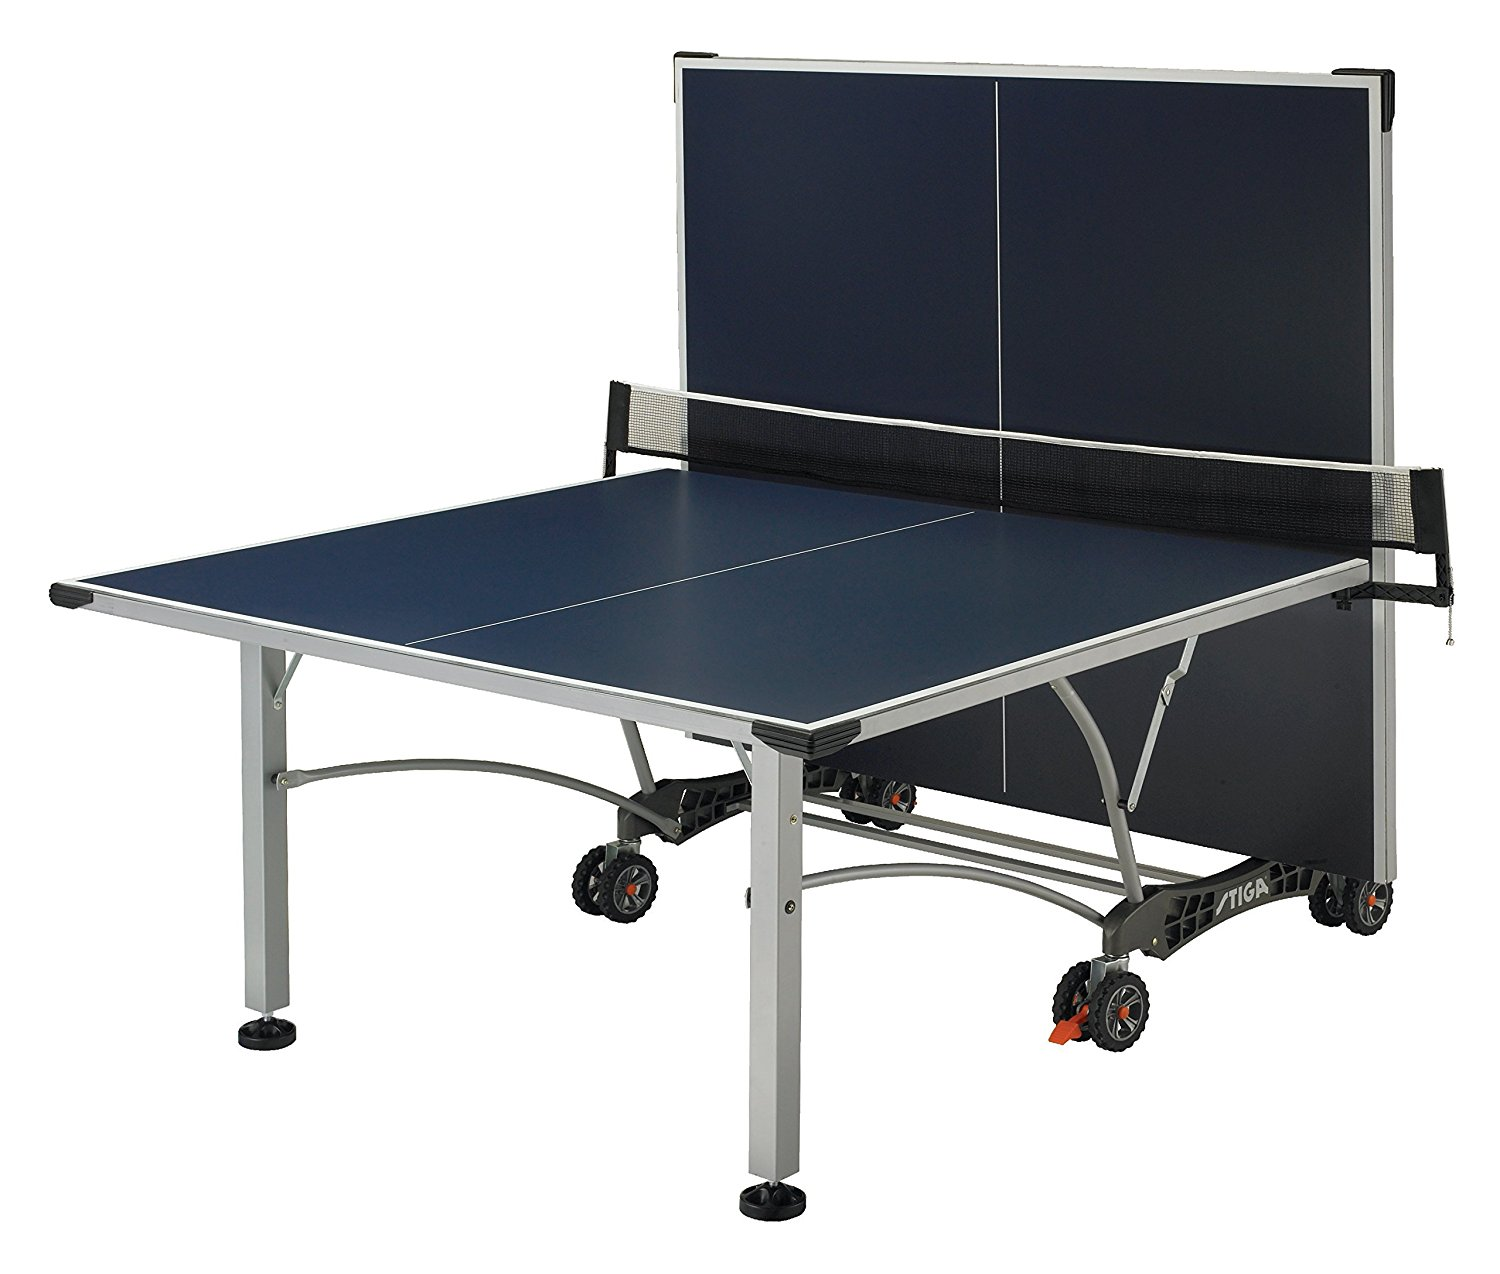 Stiga baja outdoor table tennis table review a durable table - Weatherproof table tennis table ...